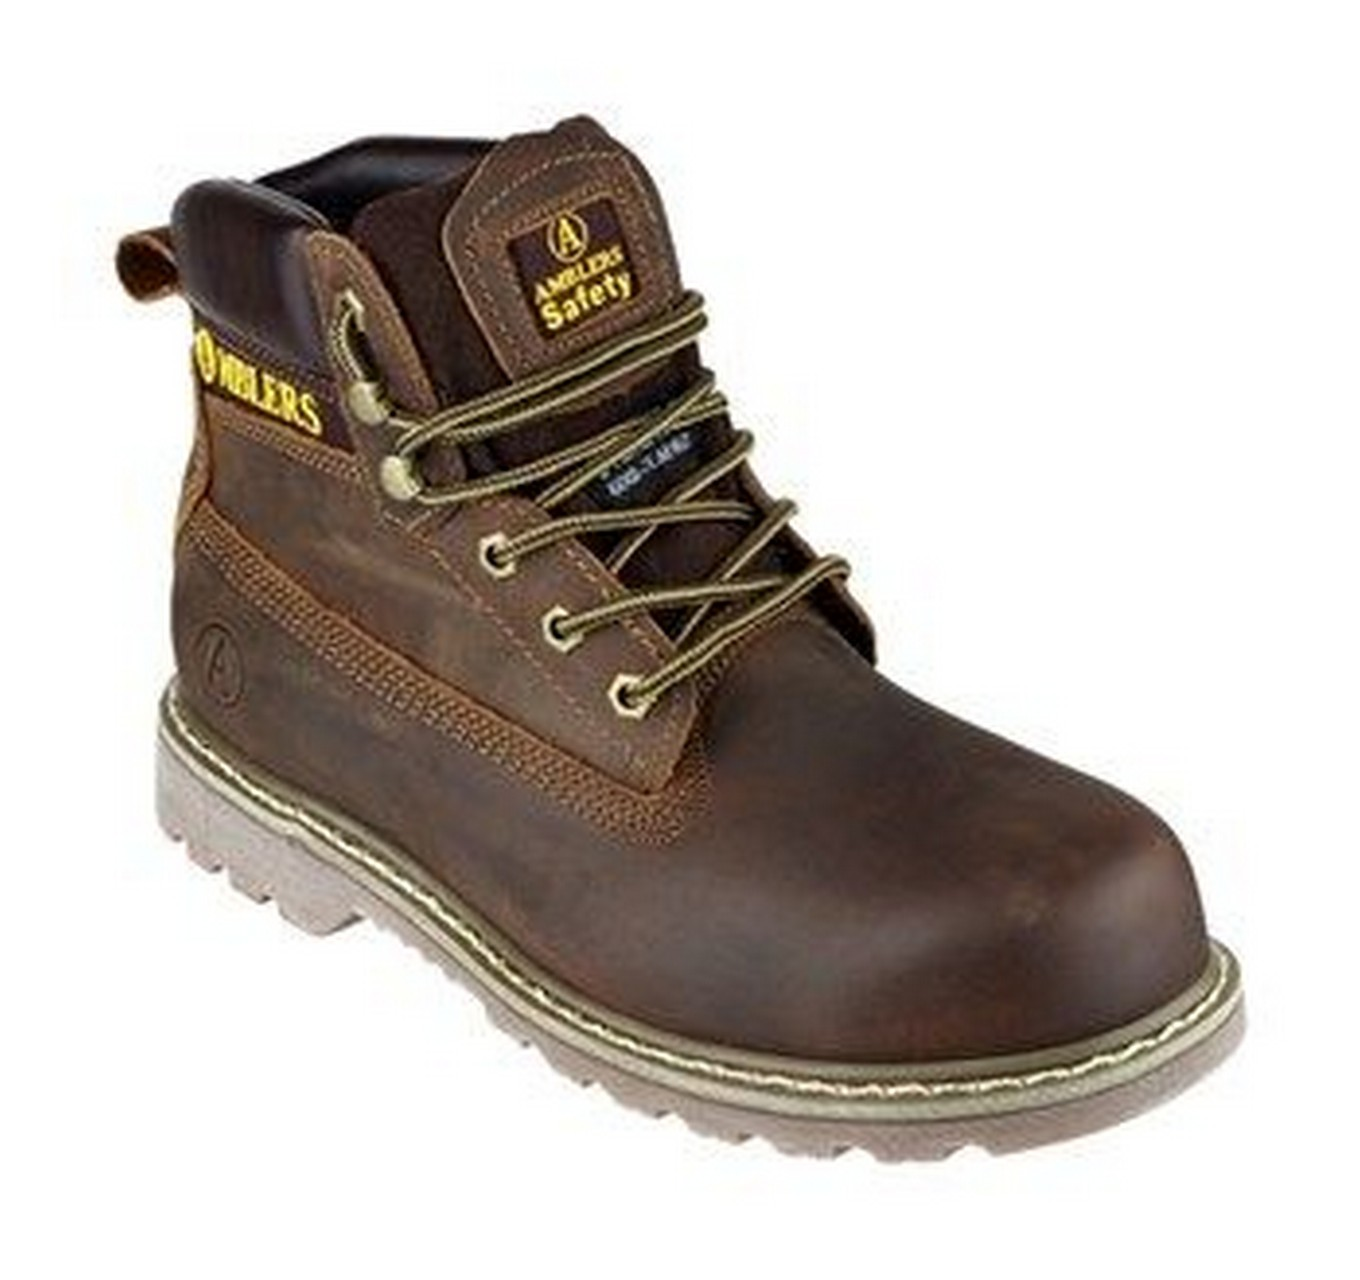 Safety Boot Amblers Fs164 11